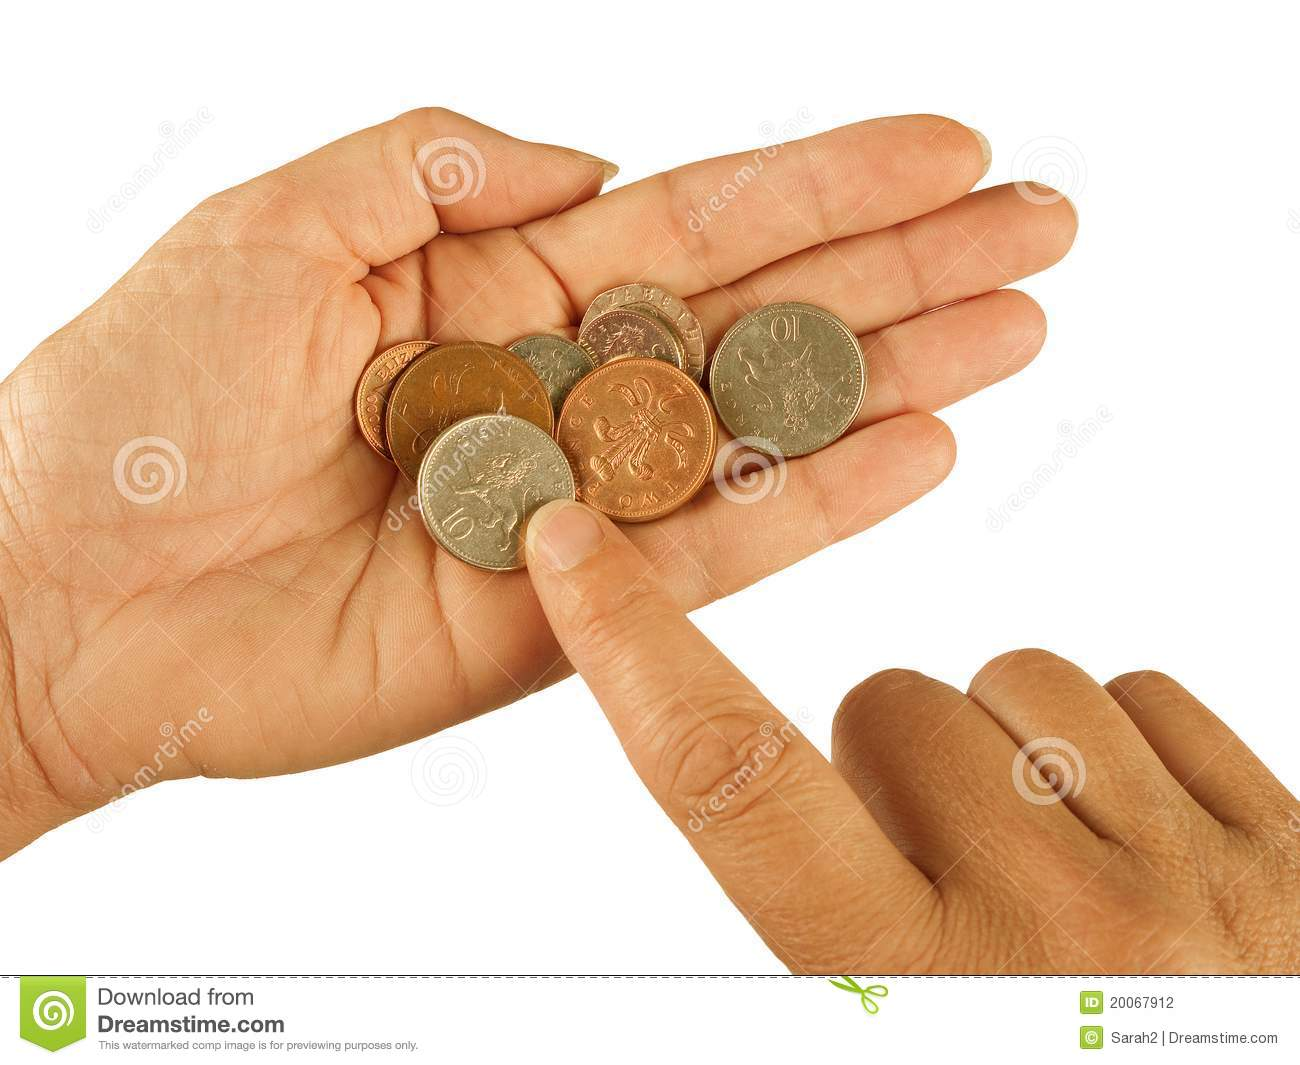 worksheet Counting Pennies counting pennies stock photos images pictures 142 uk poverty hardship concept photography